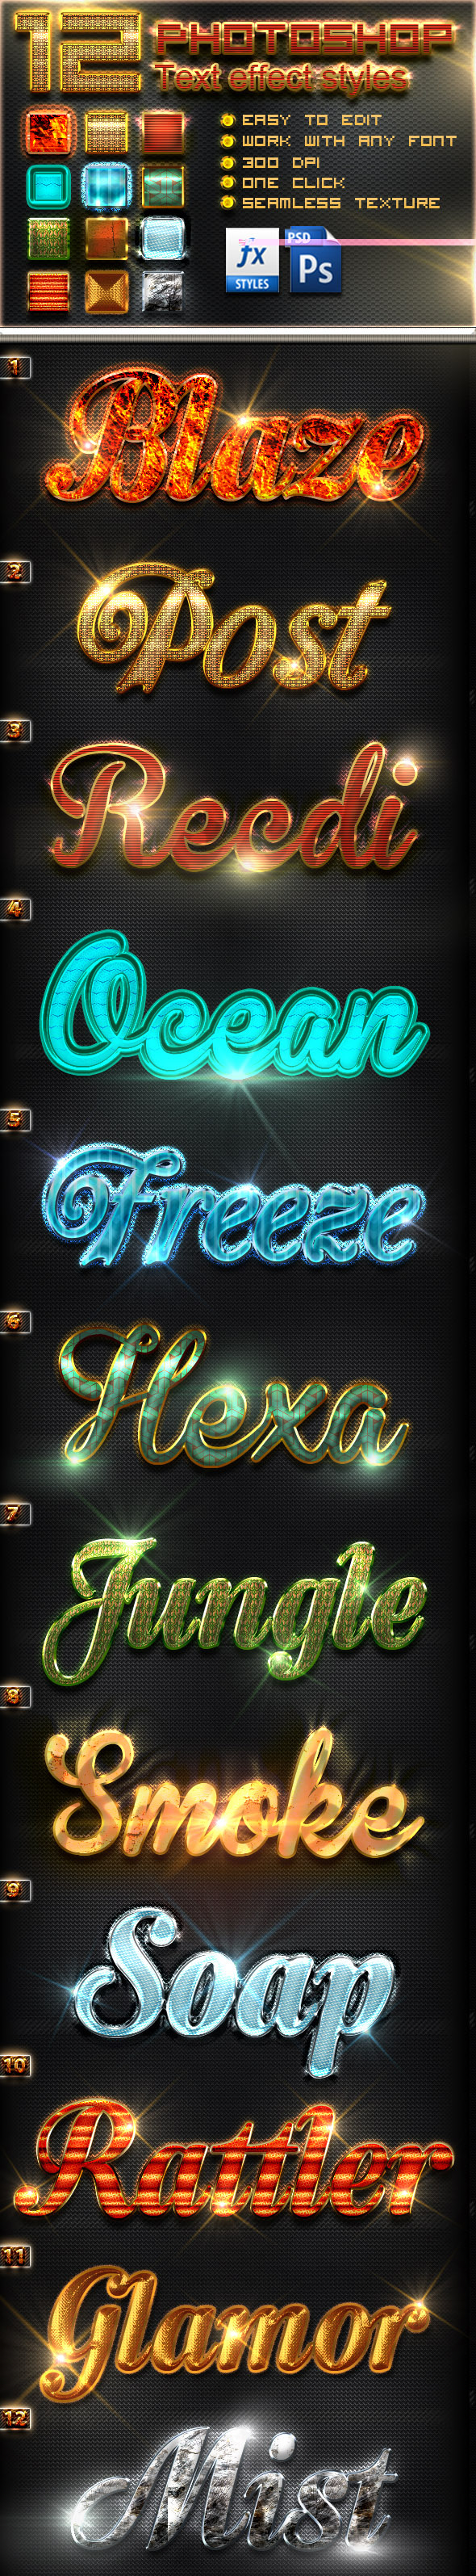 12 Photoshop Text Effect Styles Vol 4 - Text Effects Styles